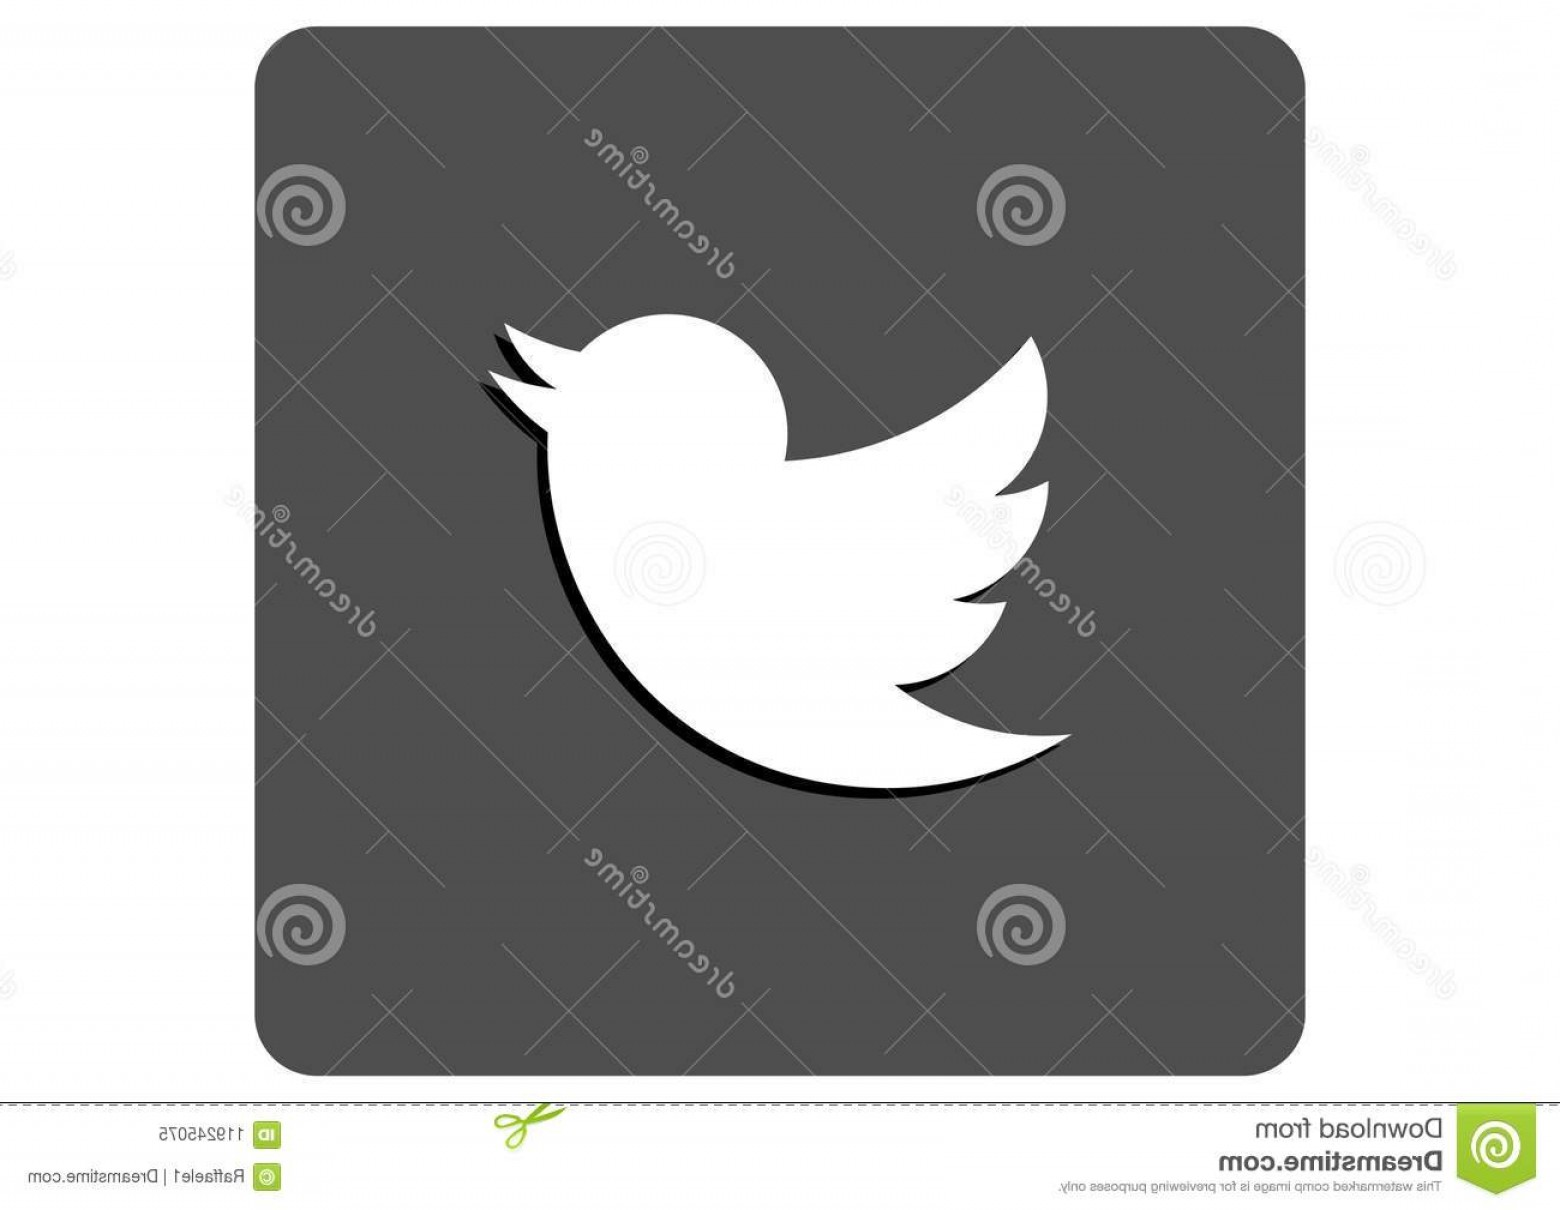 Illustrator Vector Format: Twitter Social Media Logo Twitter Social Media Logo Grey Scale Vector Format Available Illustrator Ai Image